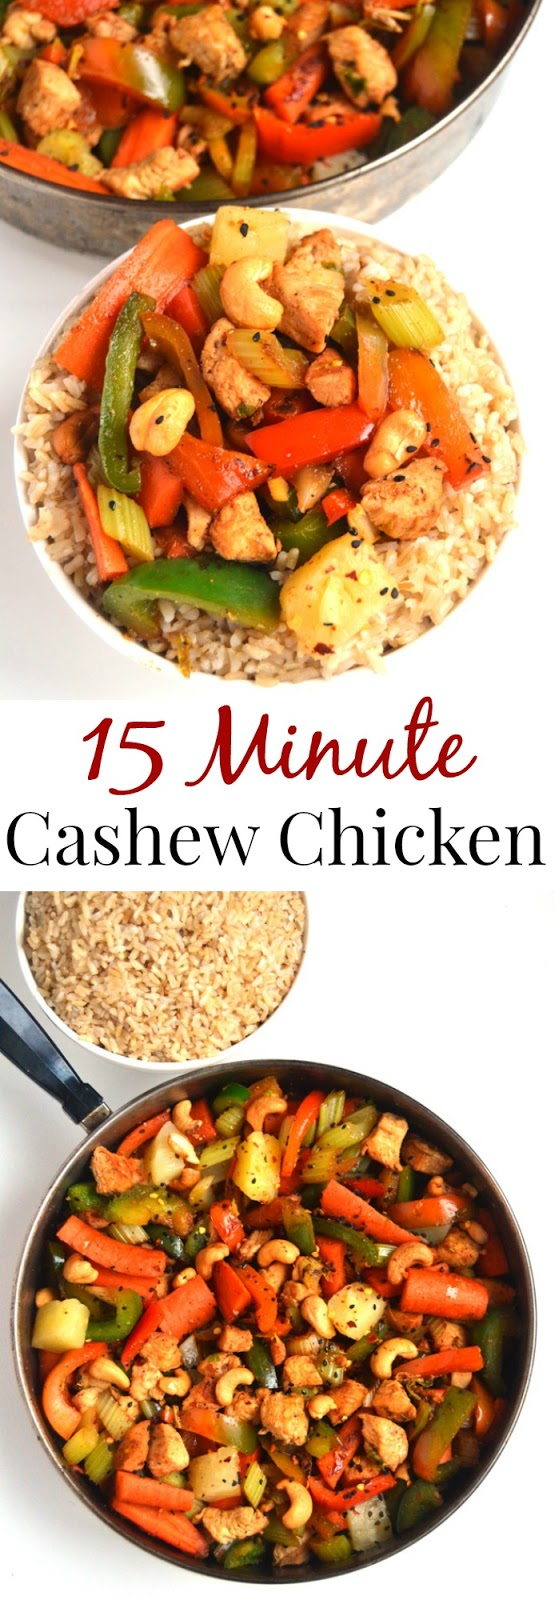 15 Minute Cashew Chicken is ready so easy to make and is the perfect lighter stir-fry with chicken, cashews, peppers, carrots, pineapple, celery and a delicious homemade sauce! www.nutritionistreviews.com